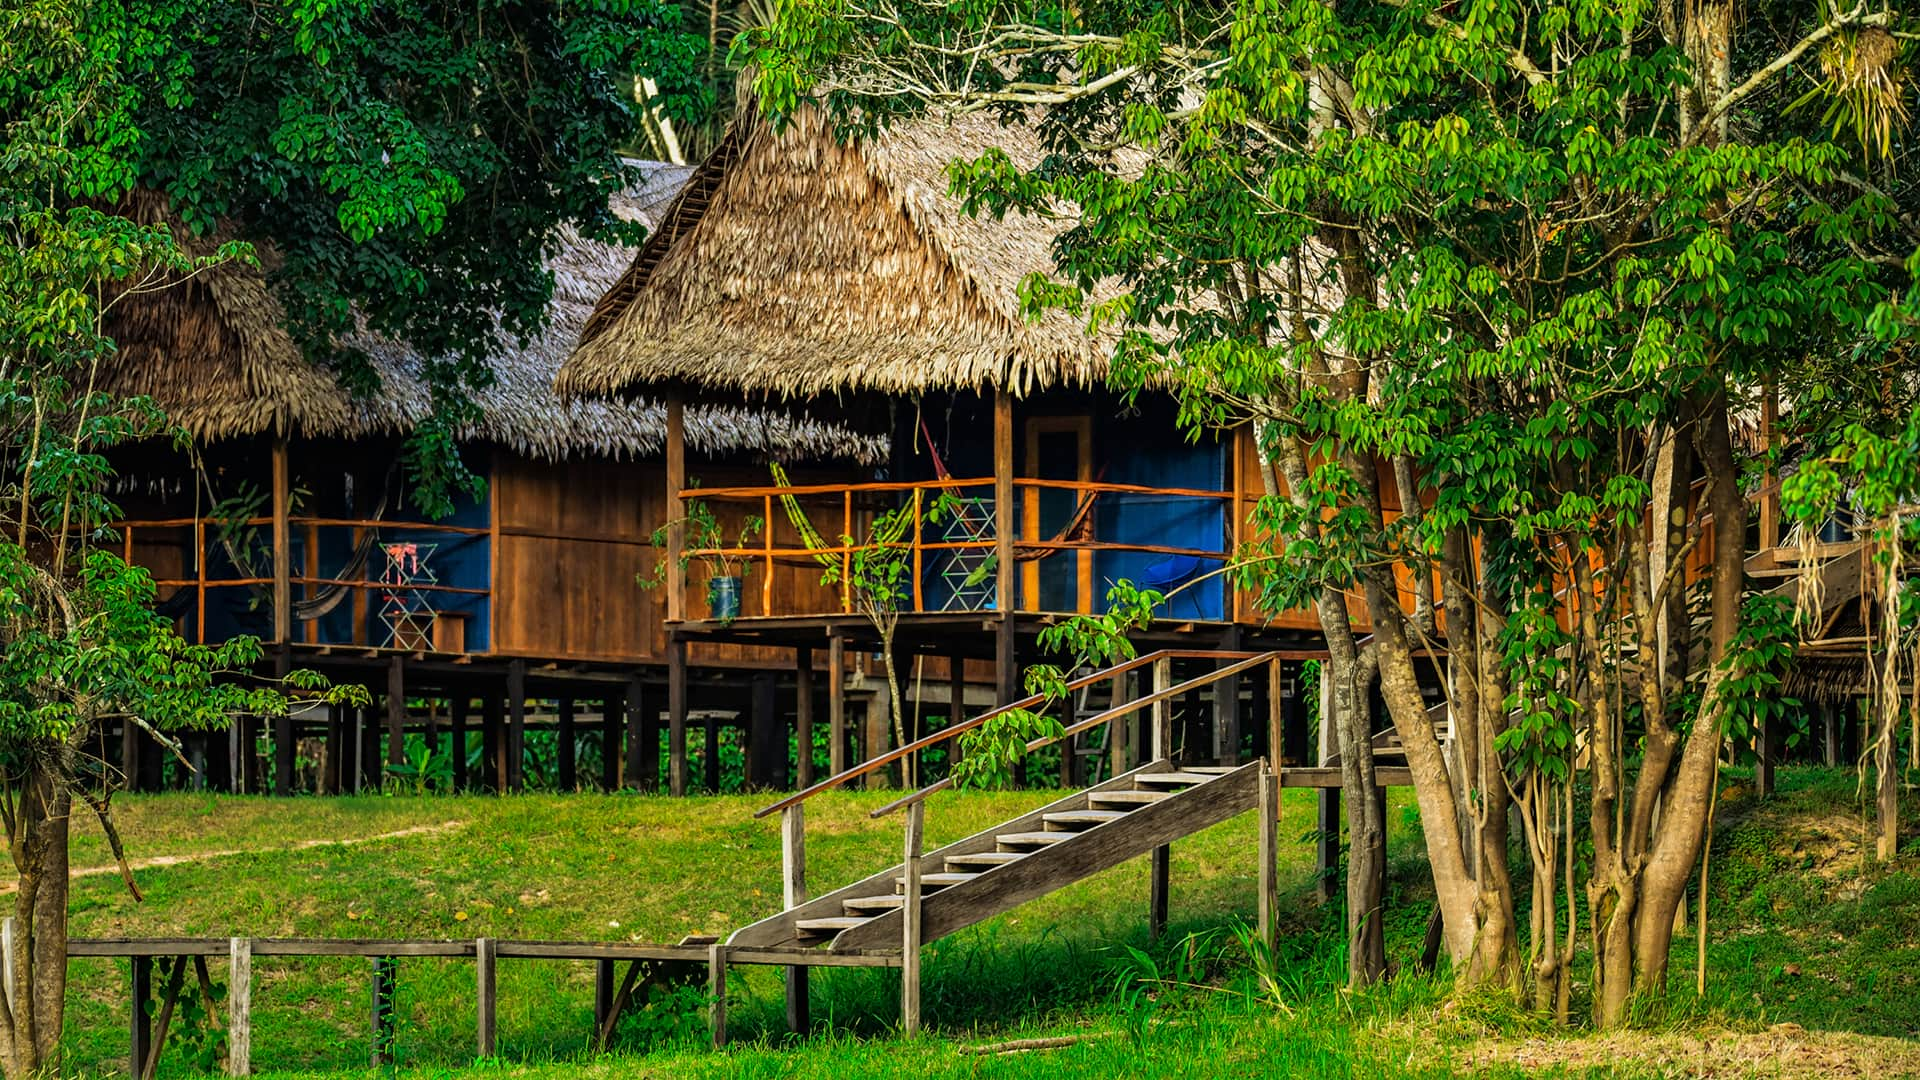 11Traditional Amazonian buildings are characteristic of the lodge | Responsible Travel Peru